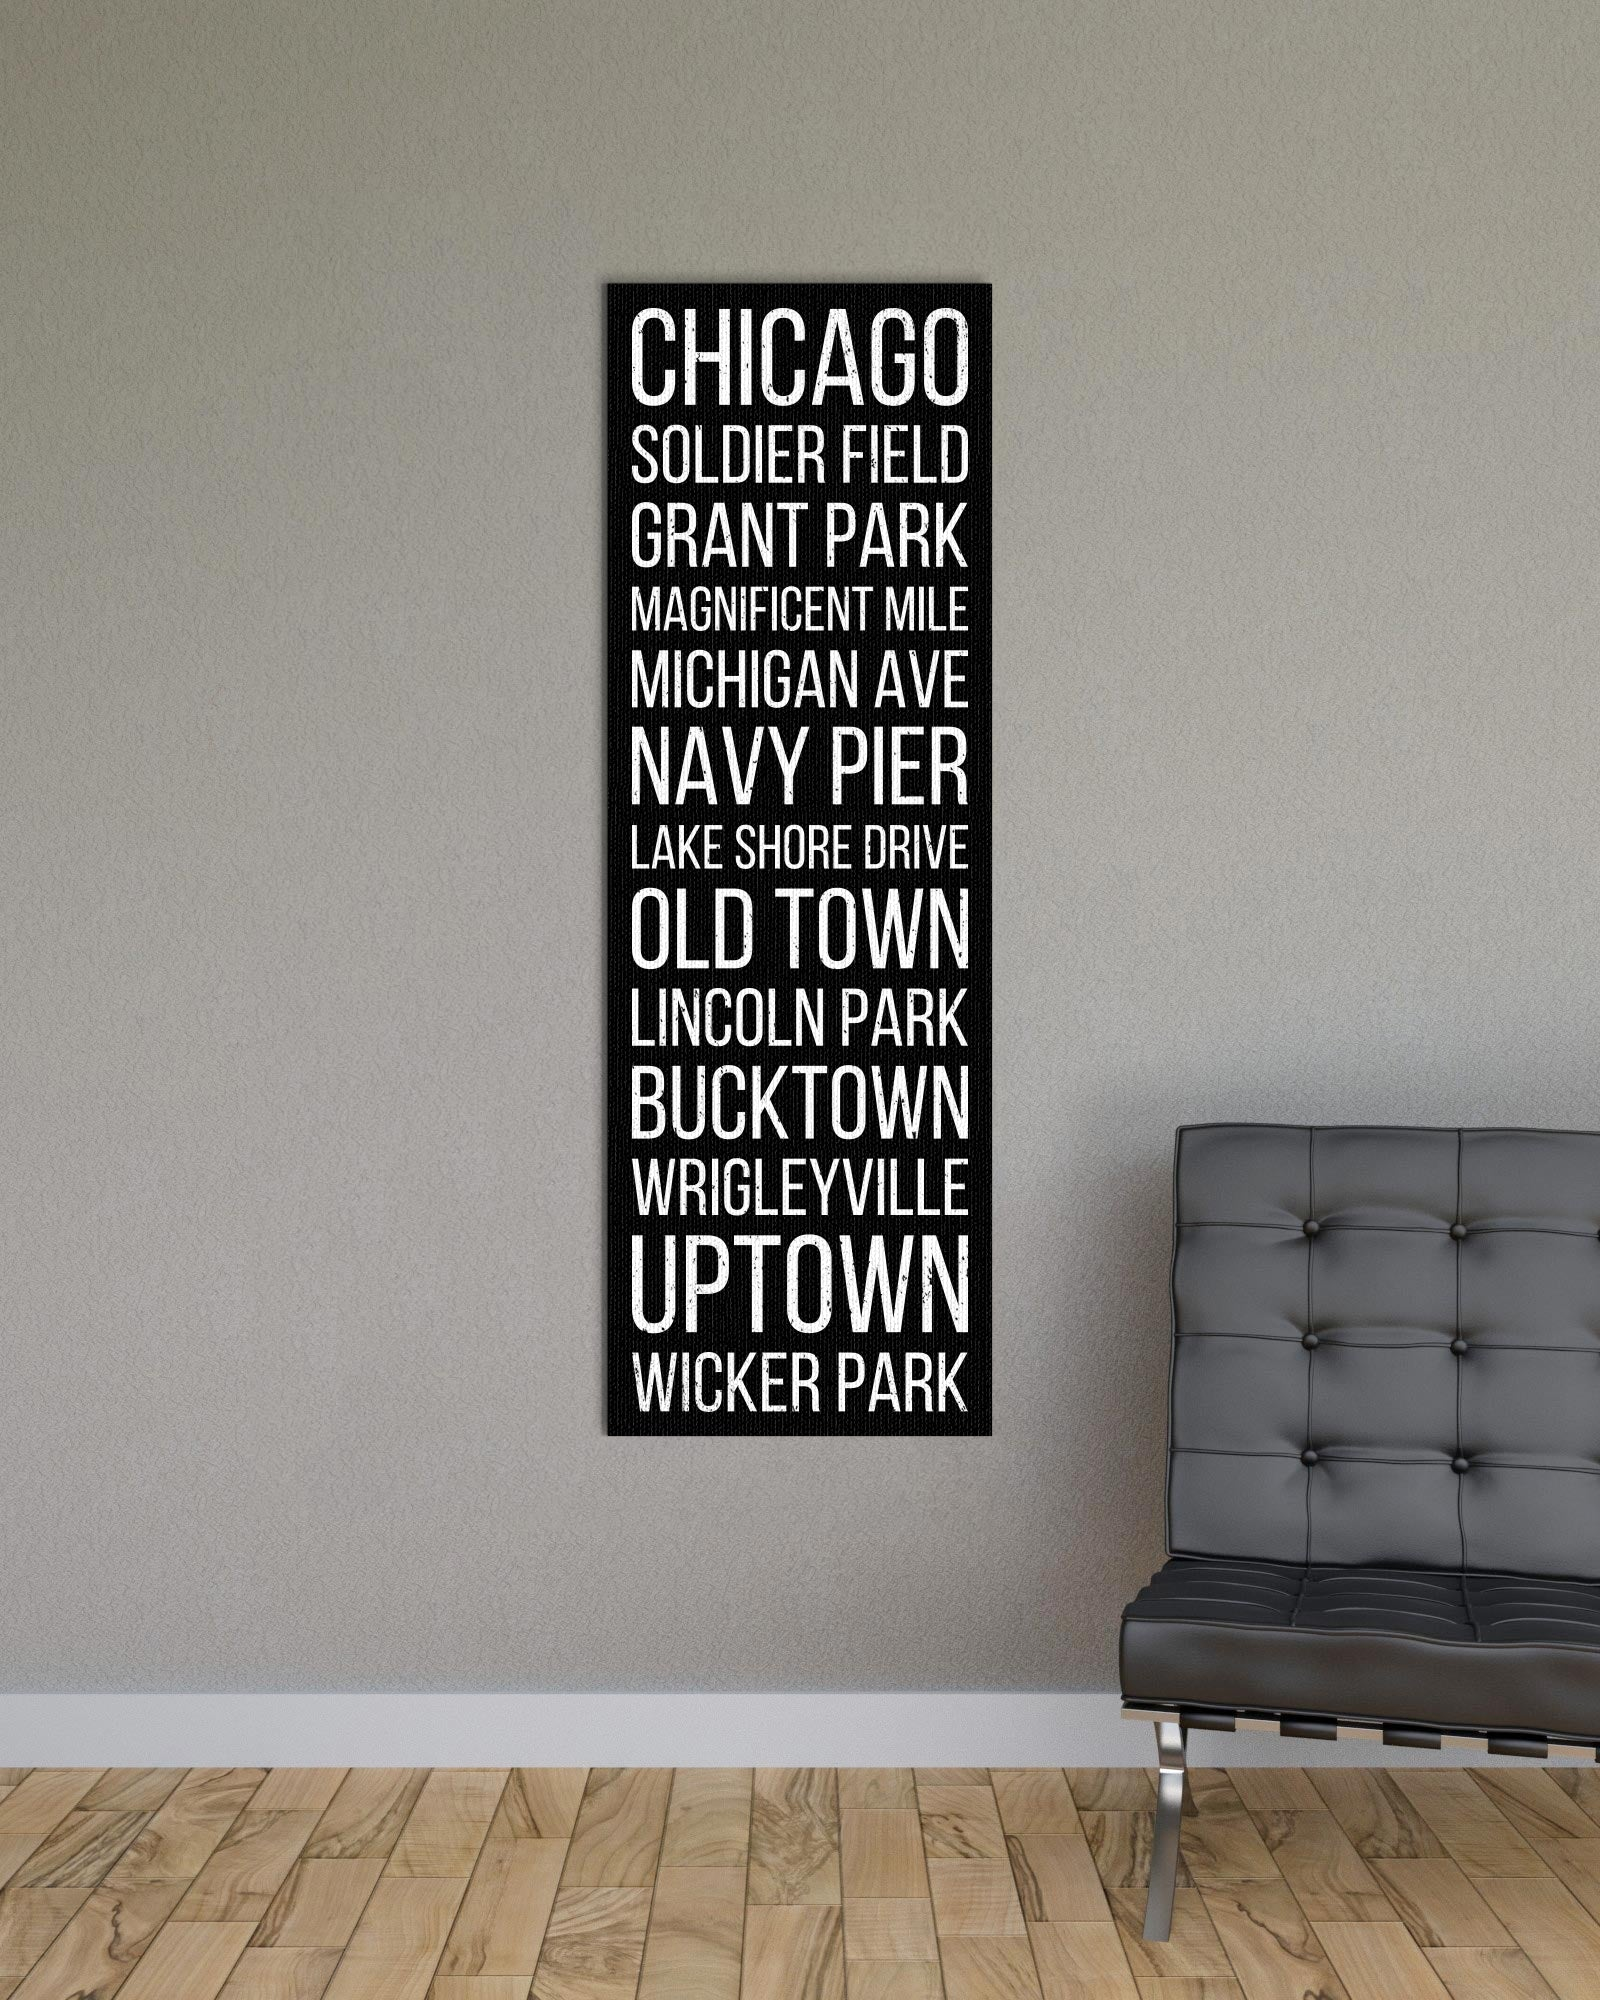 Chicago Soldier Field Grant Park Bus Scroll Subway Canvas Print